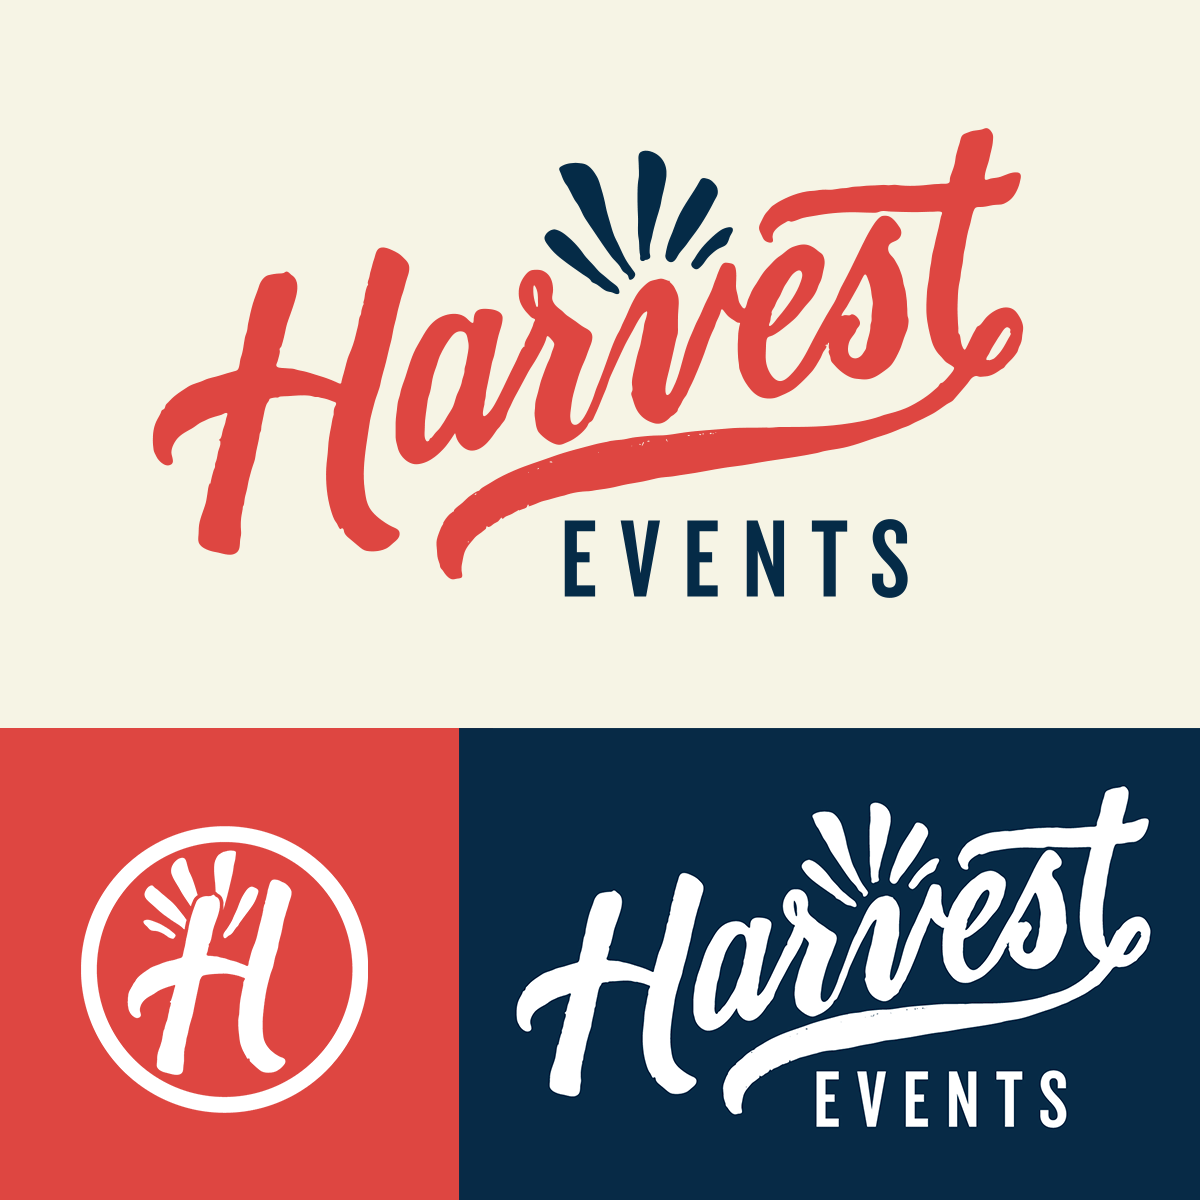 RDC-HarvestEvents-illustrations2.png